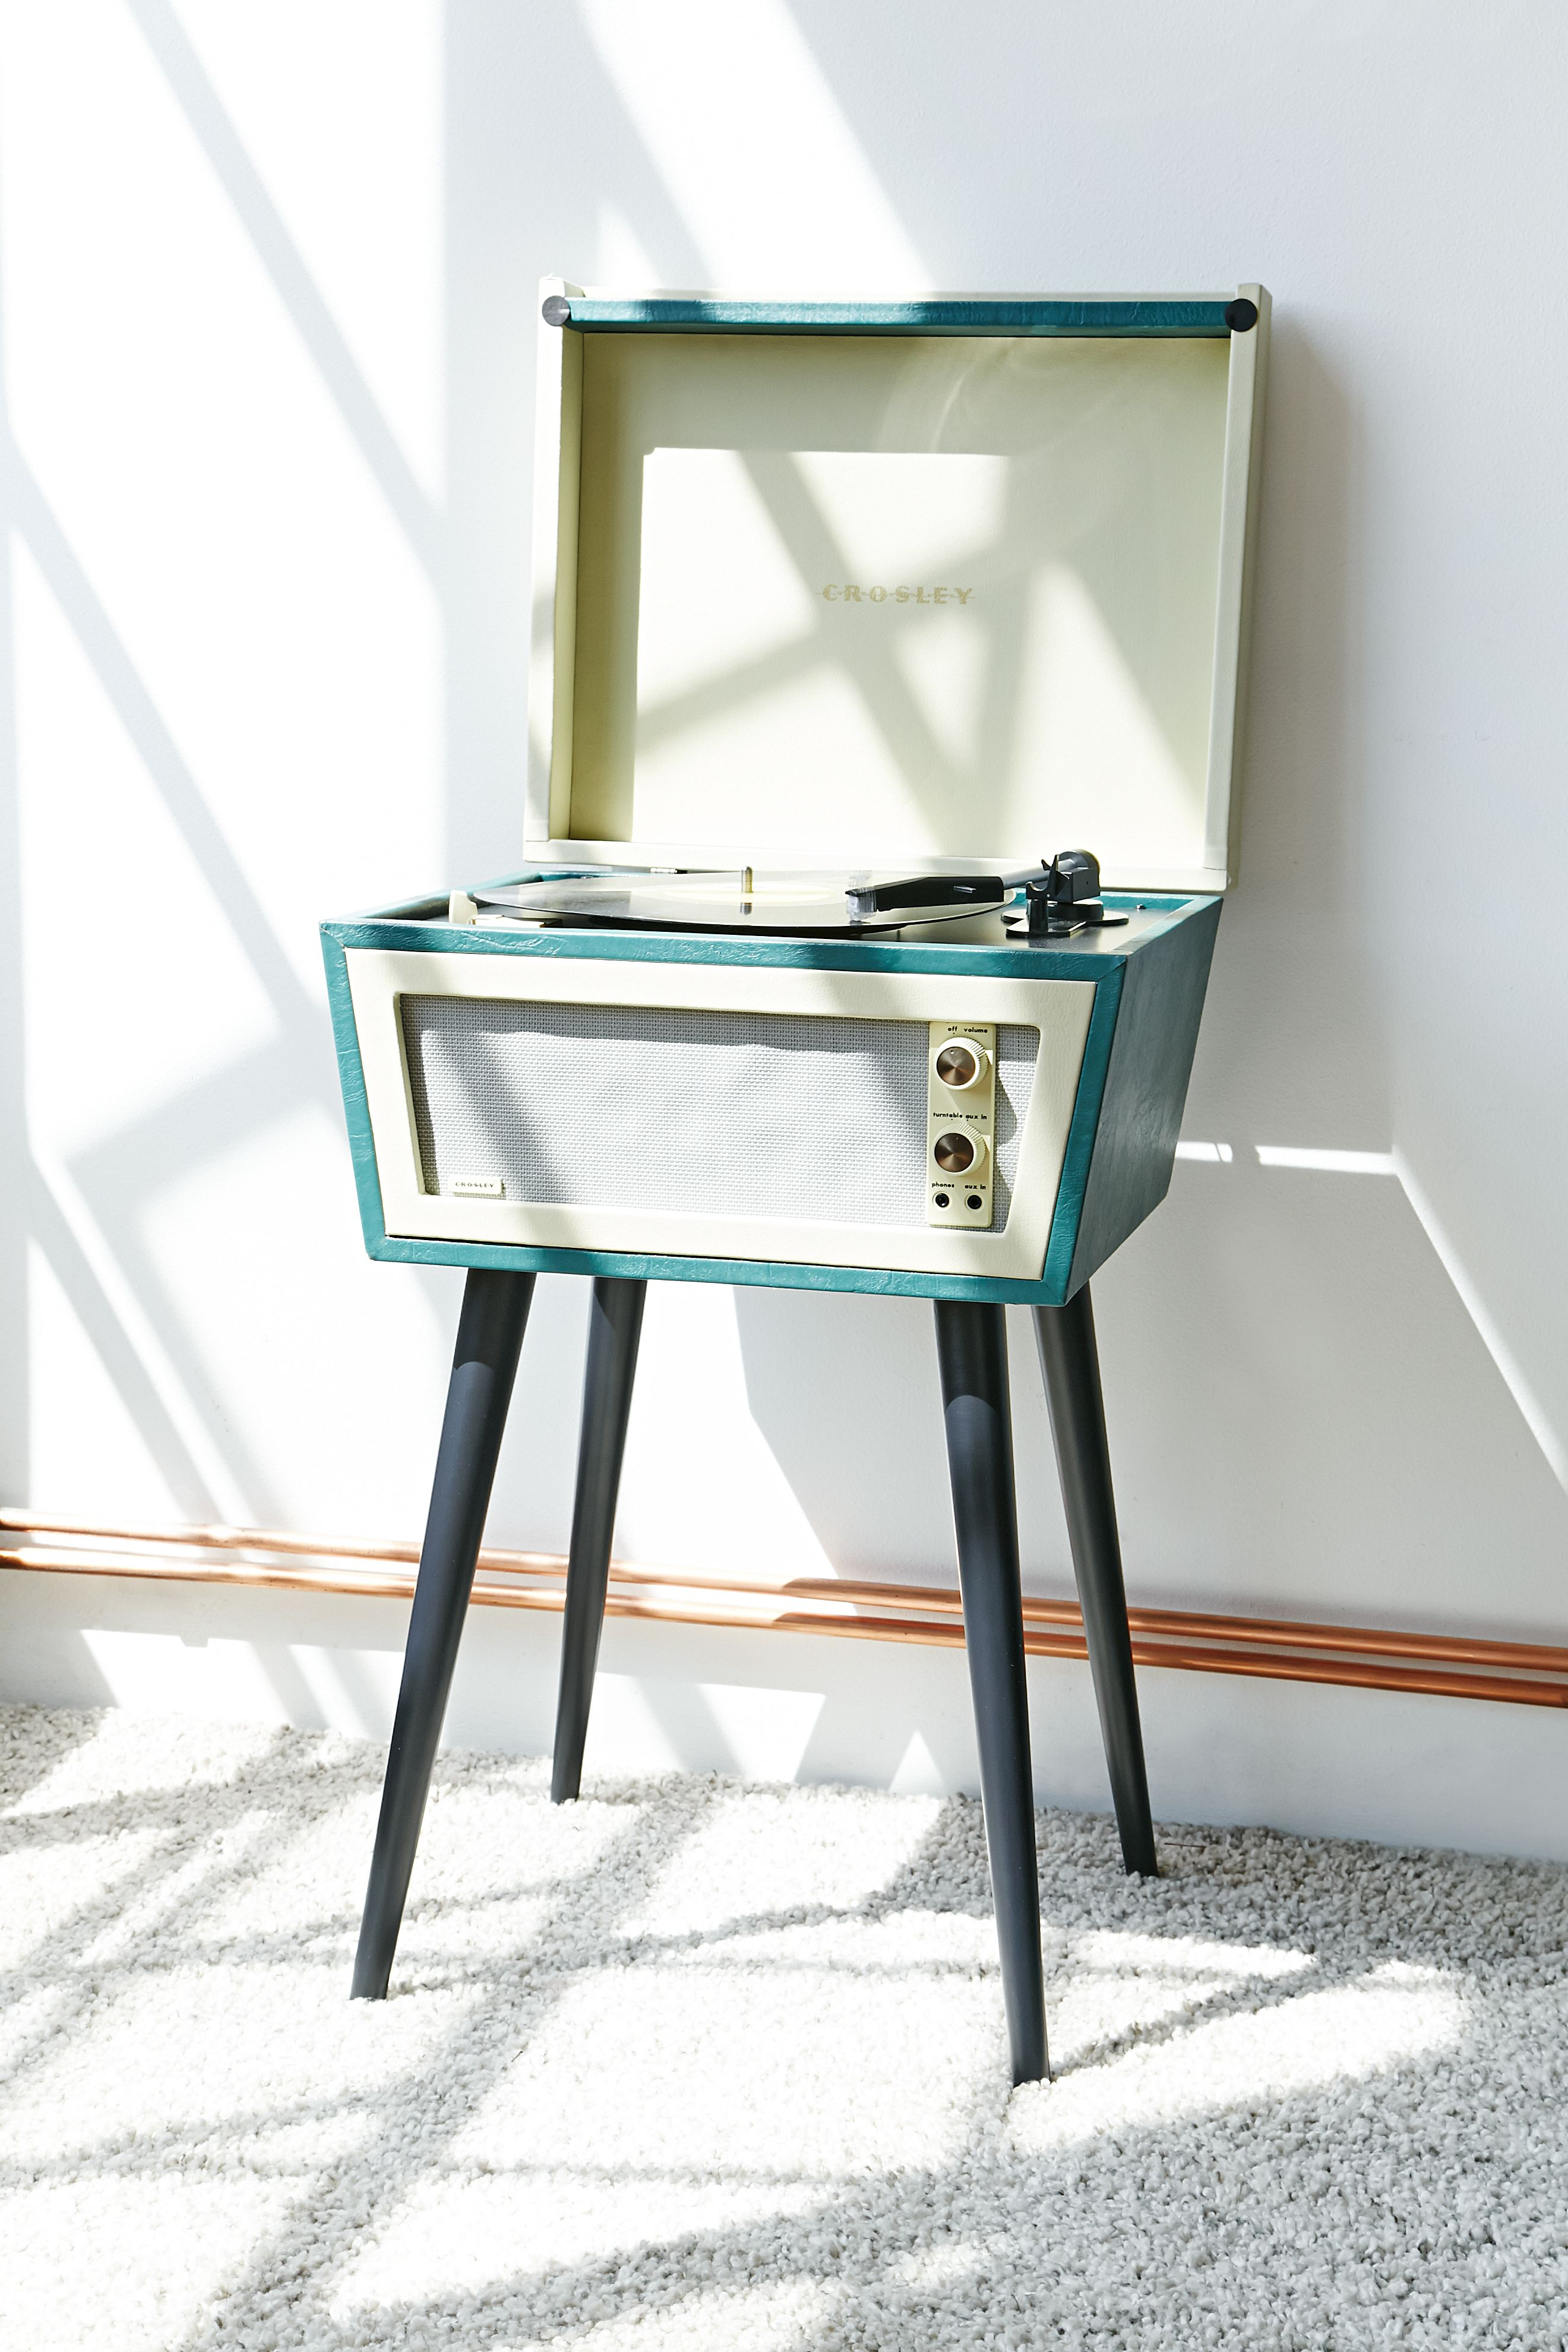 hight resolution of crosley dansette bermuda usb vinyl record player